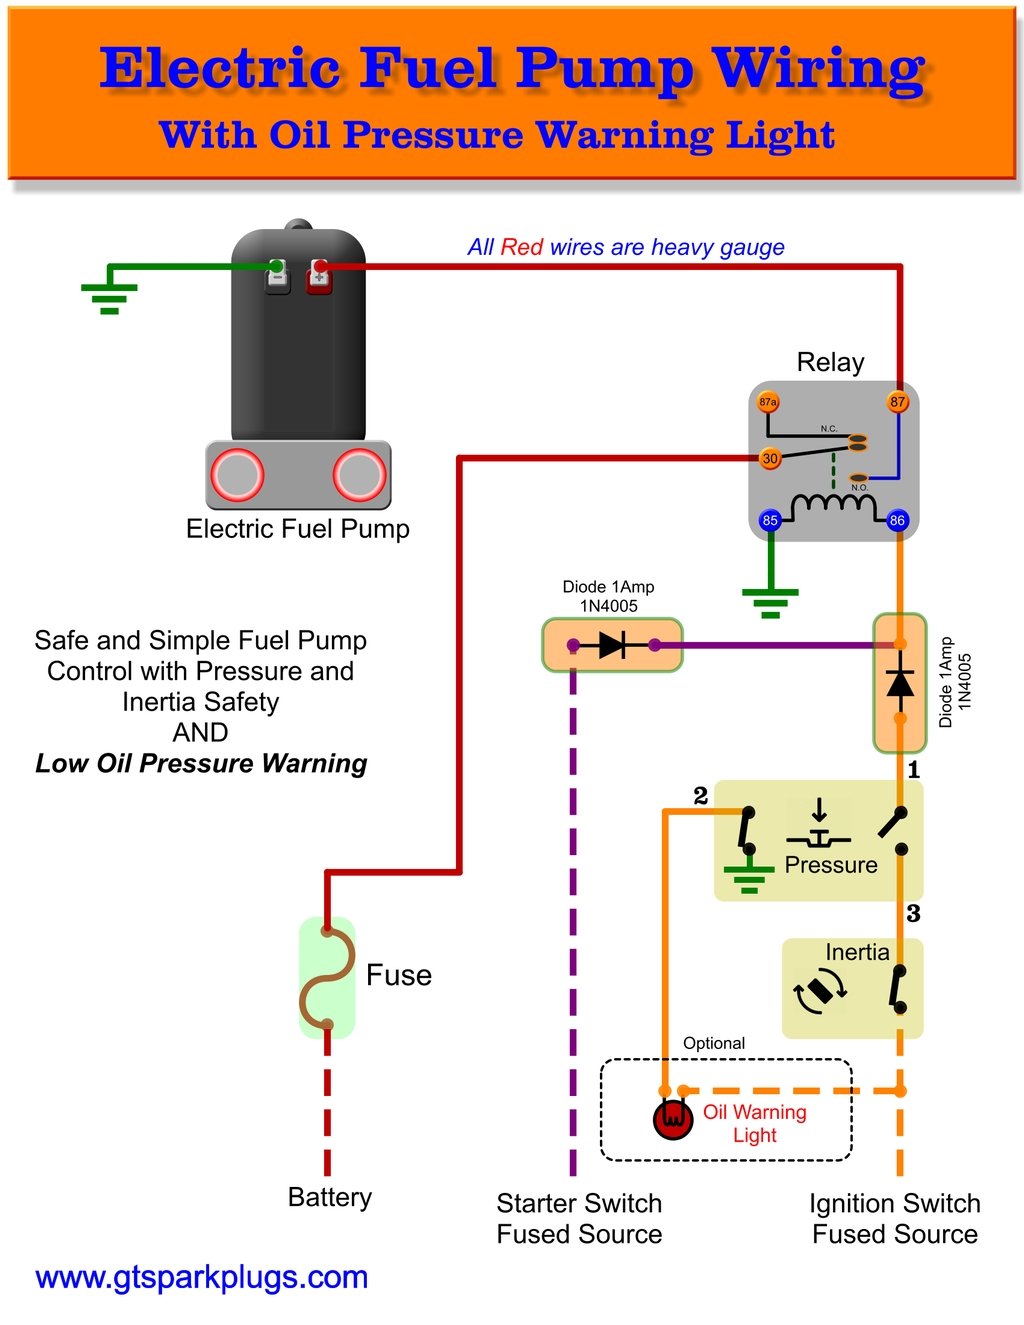 Electric Fuel Pump Wiring Diagram Gtsparkplugs 99 Boxster Starter This Is A Simple Guide To Safer For Your Spend Some Time Things Up Right And In The Event Of Problem It Can Save You